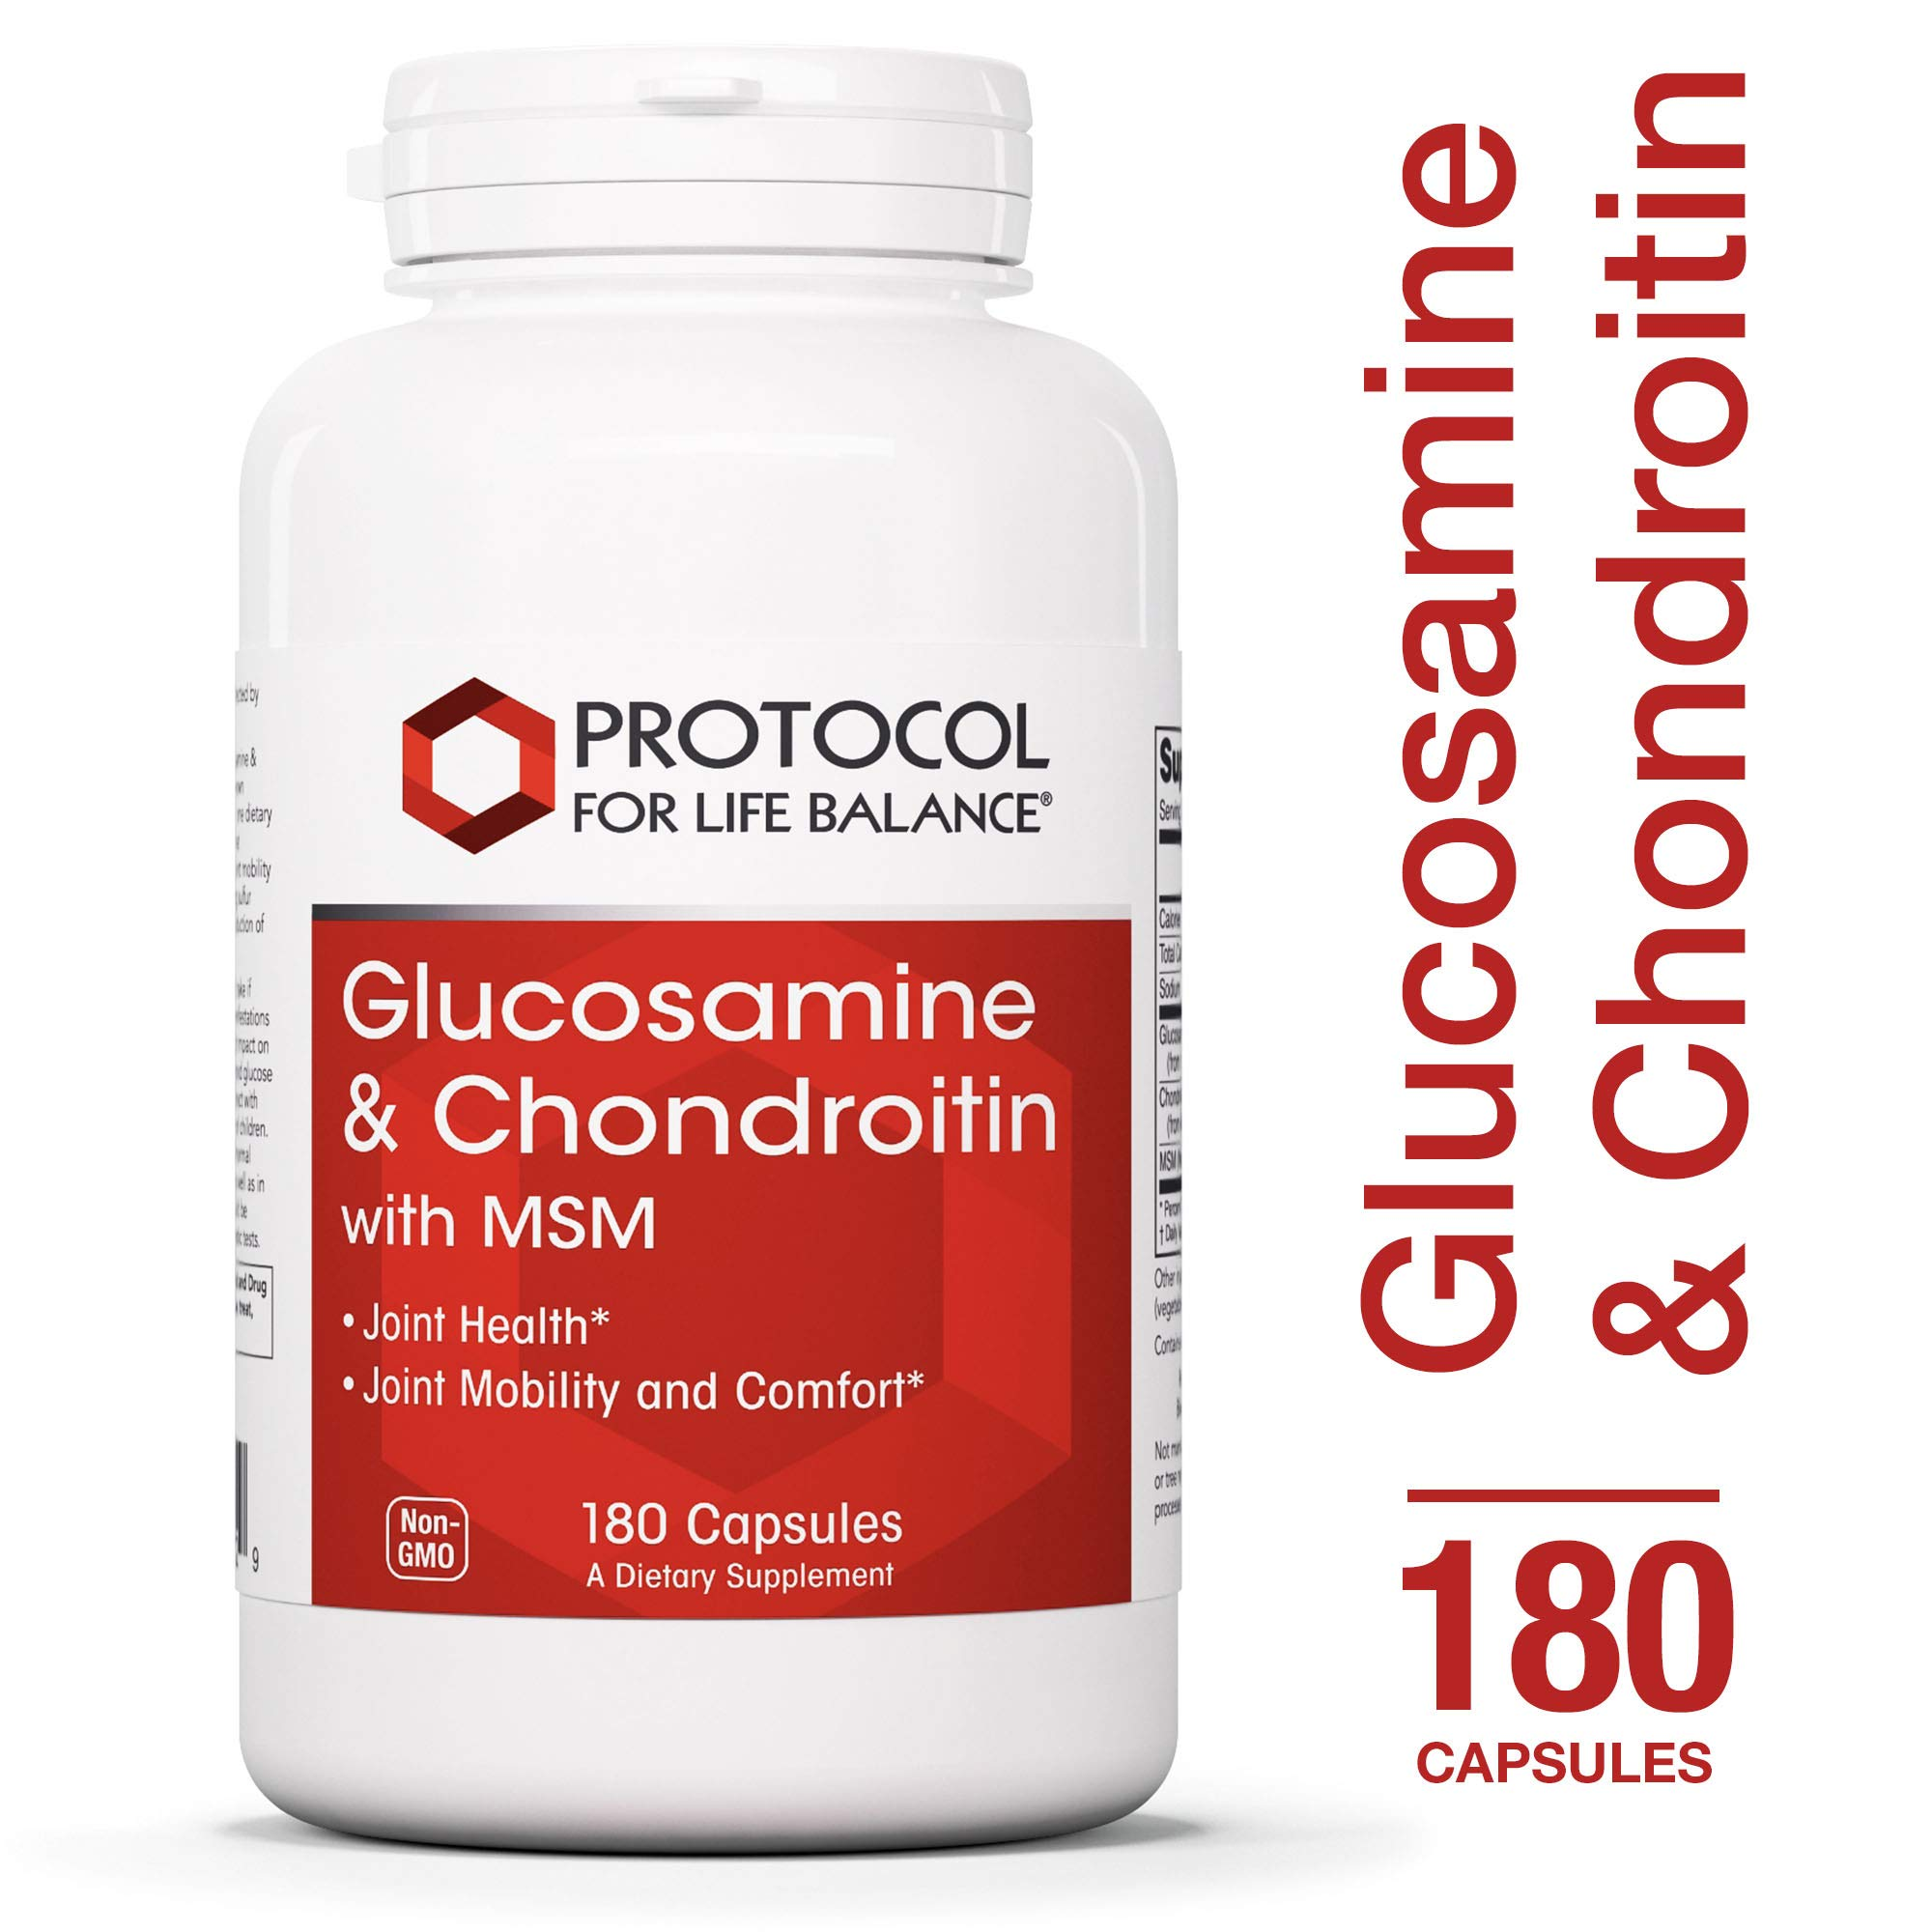 Protocol For Life Balance - Glucosamine & Chondroitin with MSM - Supports Healthy Joint Function and Comfort - Promotes Stronger Bones and Cartilage - 180 Capsules